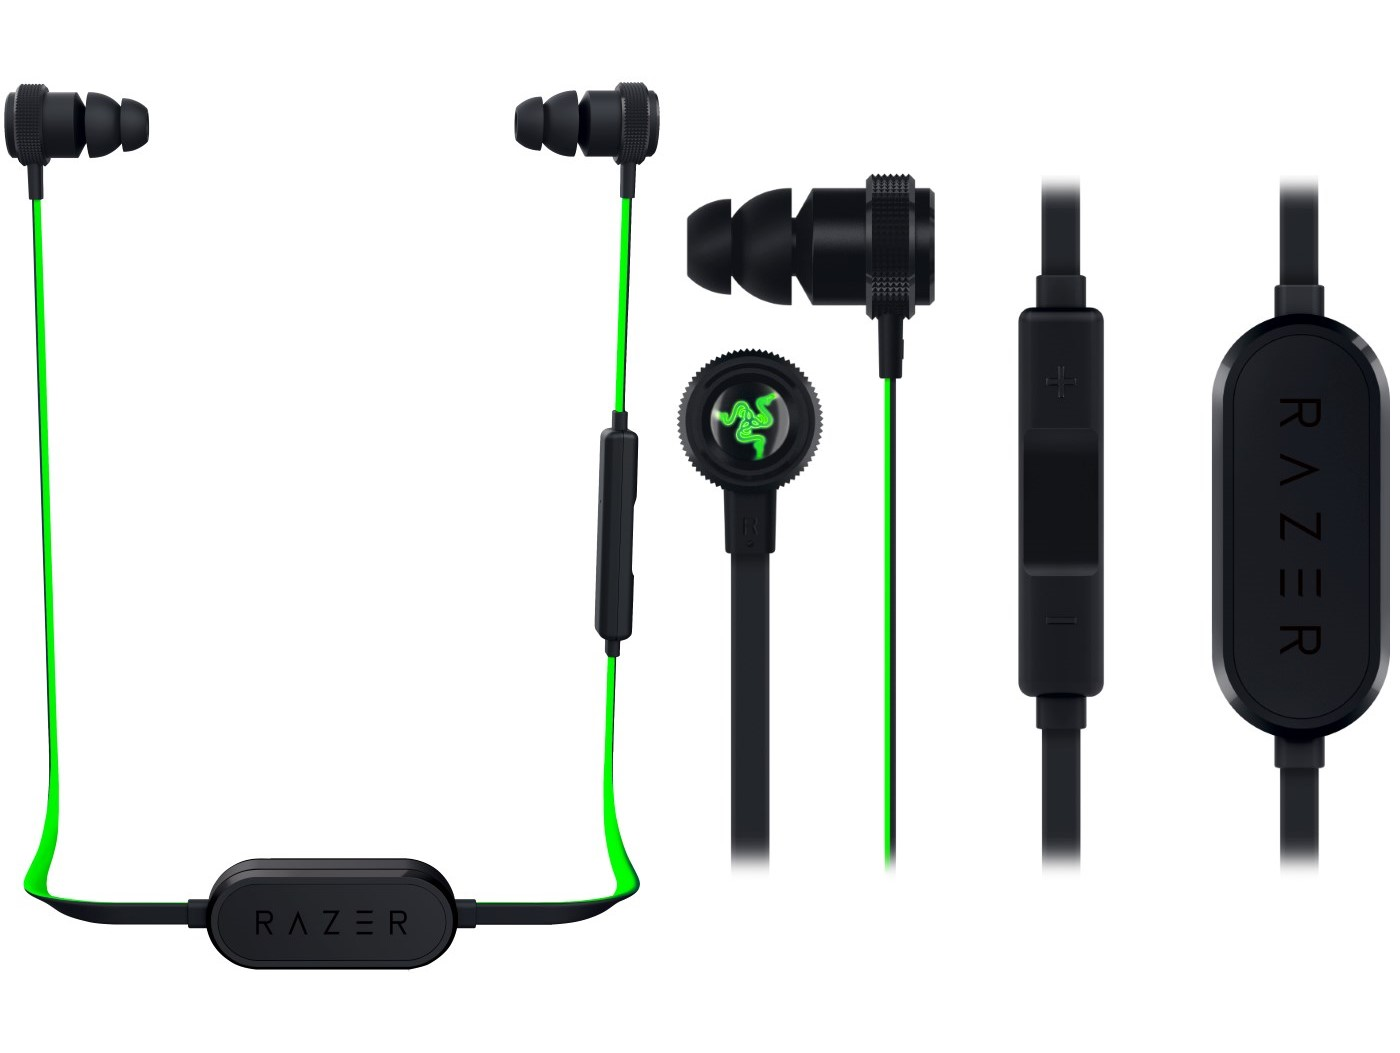 Razer's Hammerhead Gaming Bluetooth Earphones Launched in INDIA